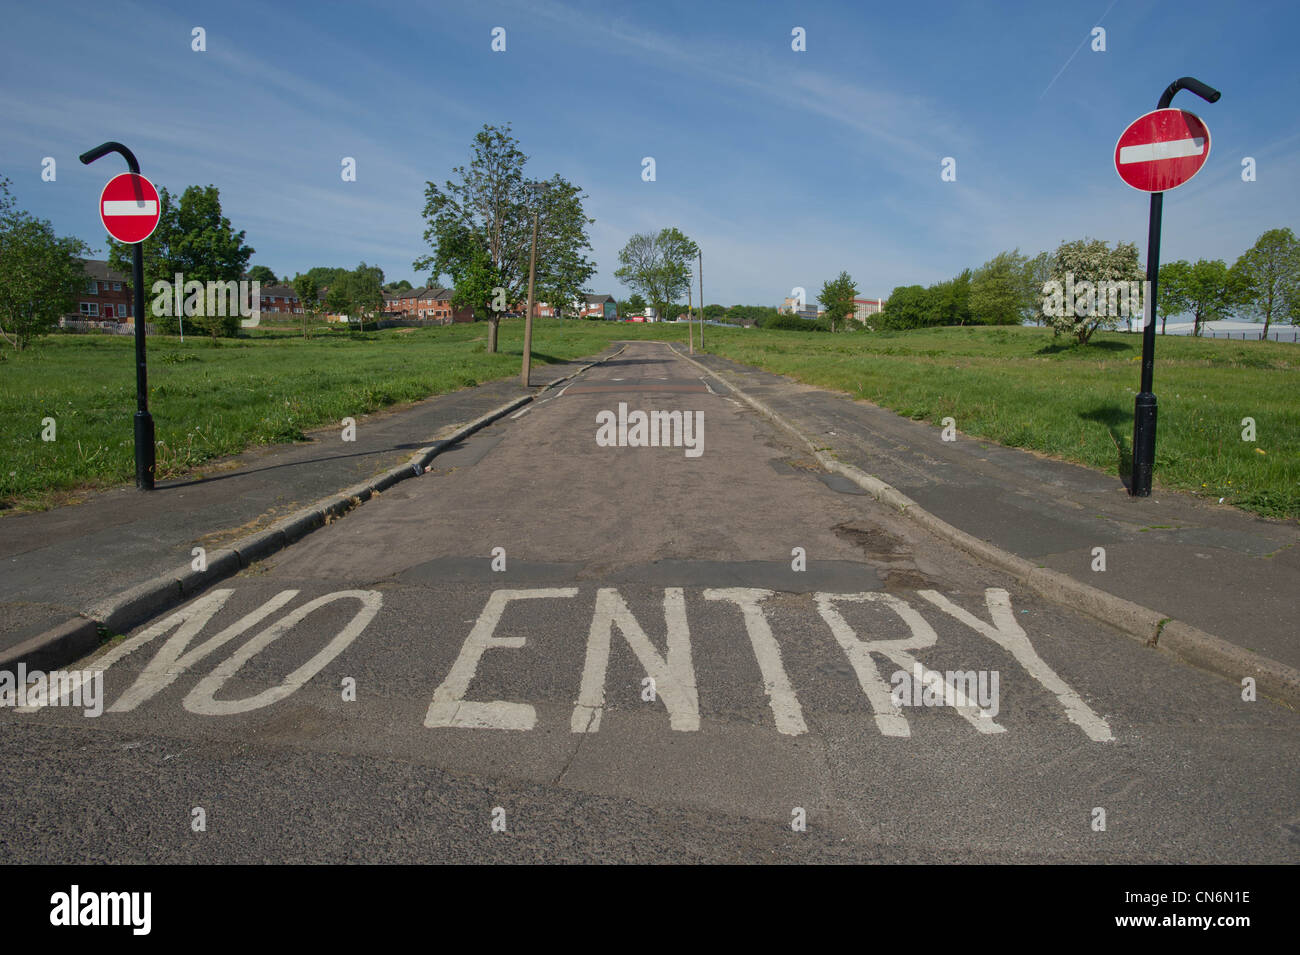 No Entry road markings and signs on a sink estate in Sheffield - Stock Image